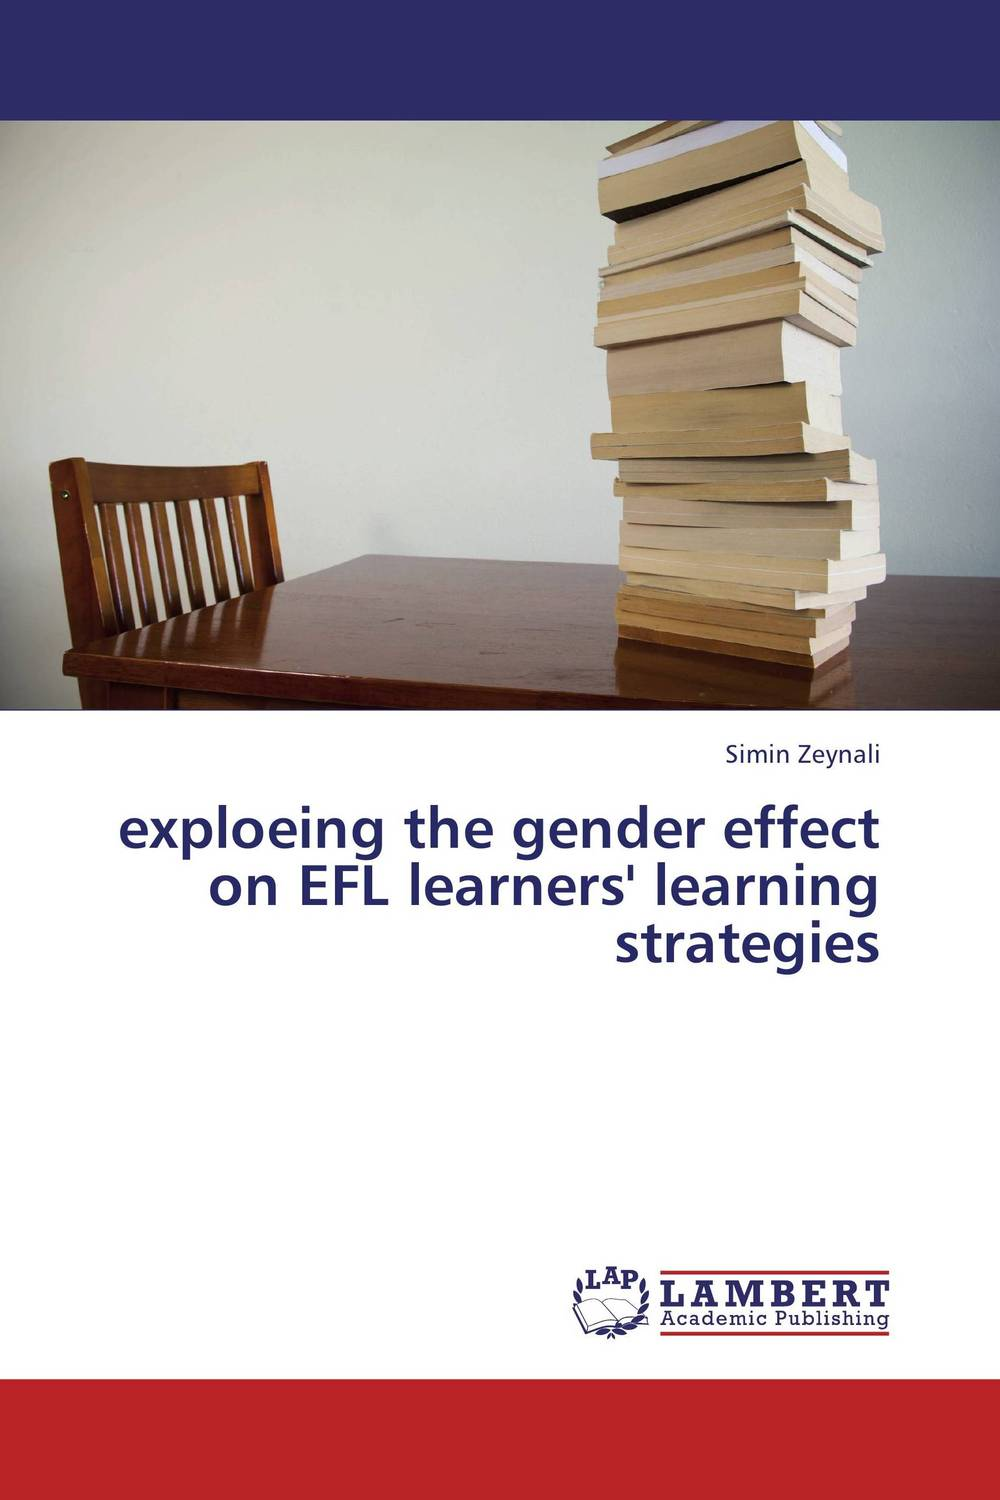 exploeing the gender effect on EFL learners' learning strategies a study on english language proficiency of efl learners in bangladesh